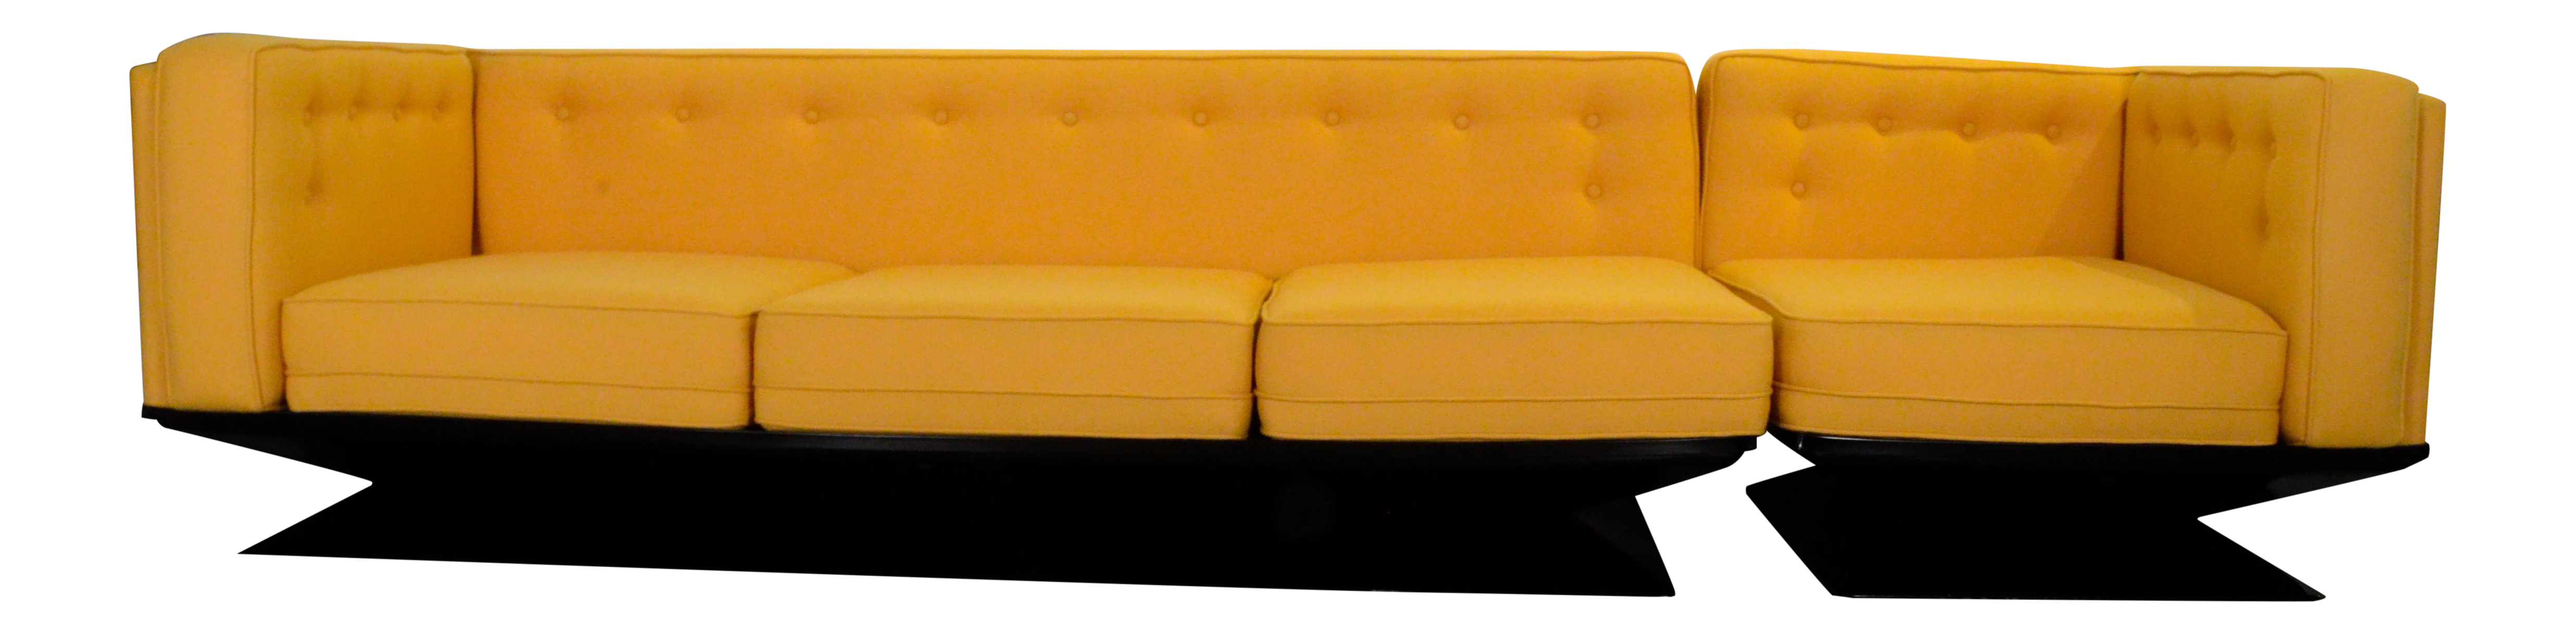 Distinguished Upholstered in a New Yellow Knoll Wool MIM Roma Ico